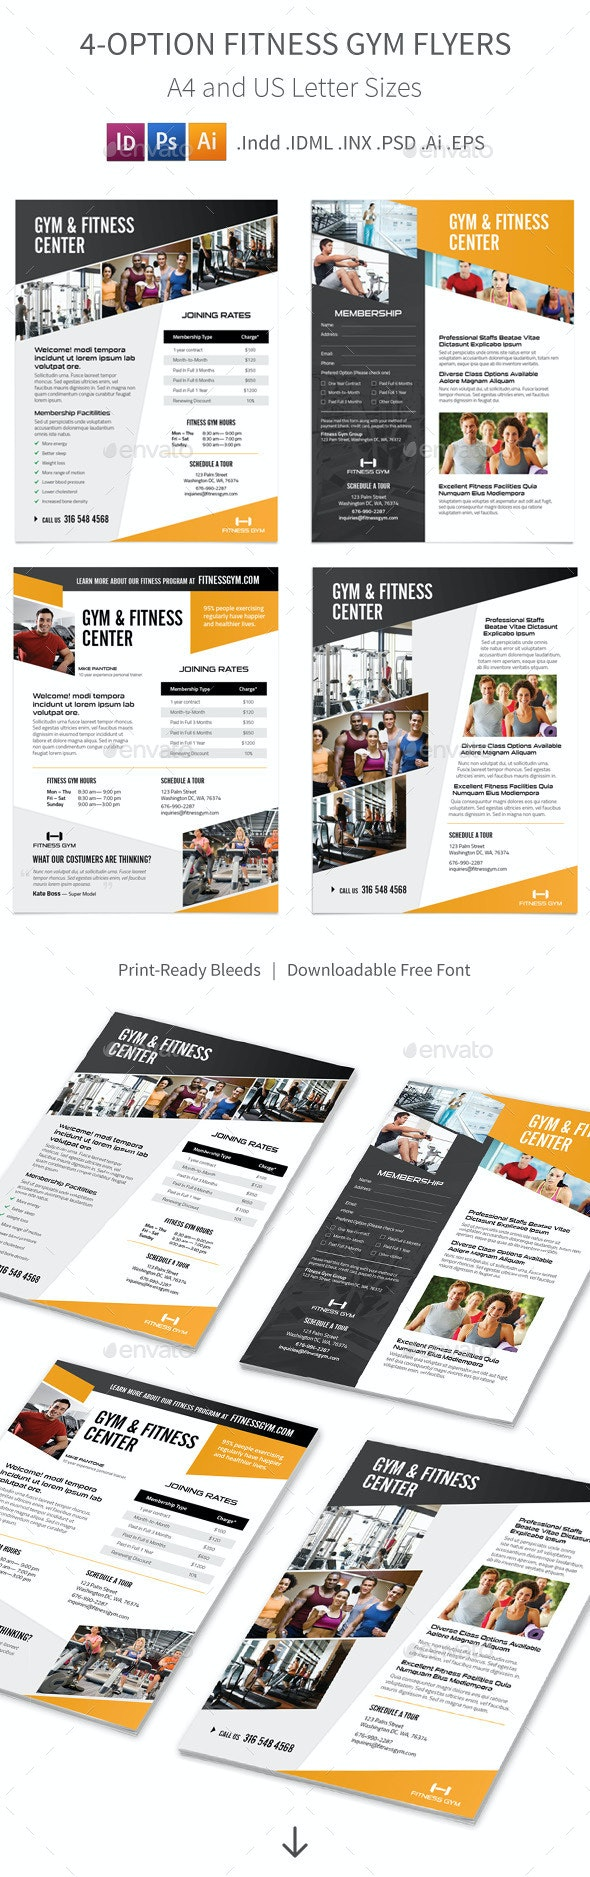 Fitness Gym Flyers – 4 Options - Corporate Flyers